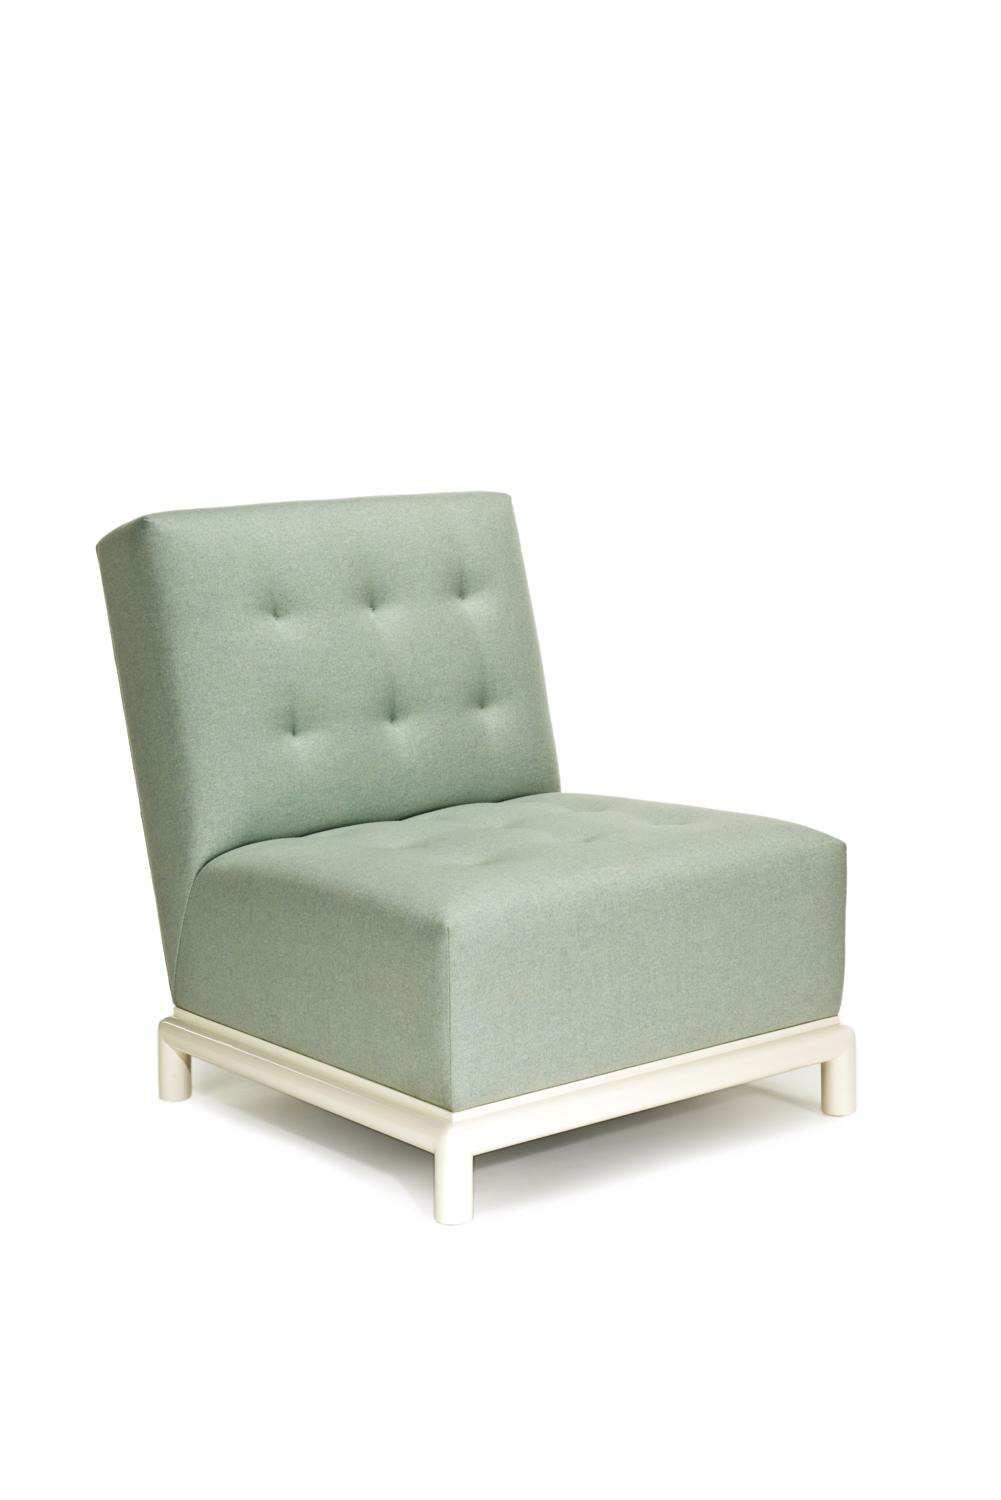 BELVEDERE SLIPPER CHAIR